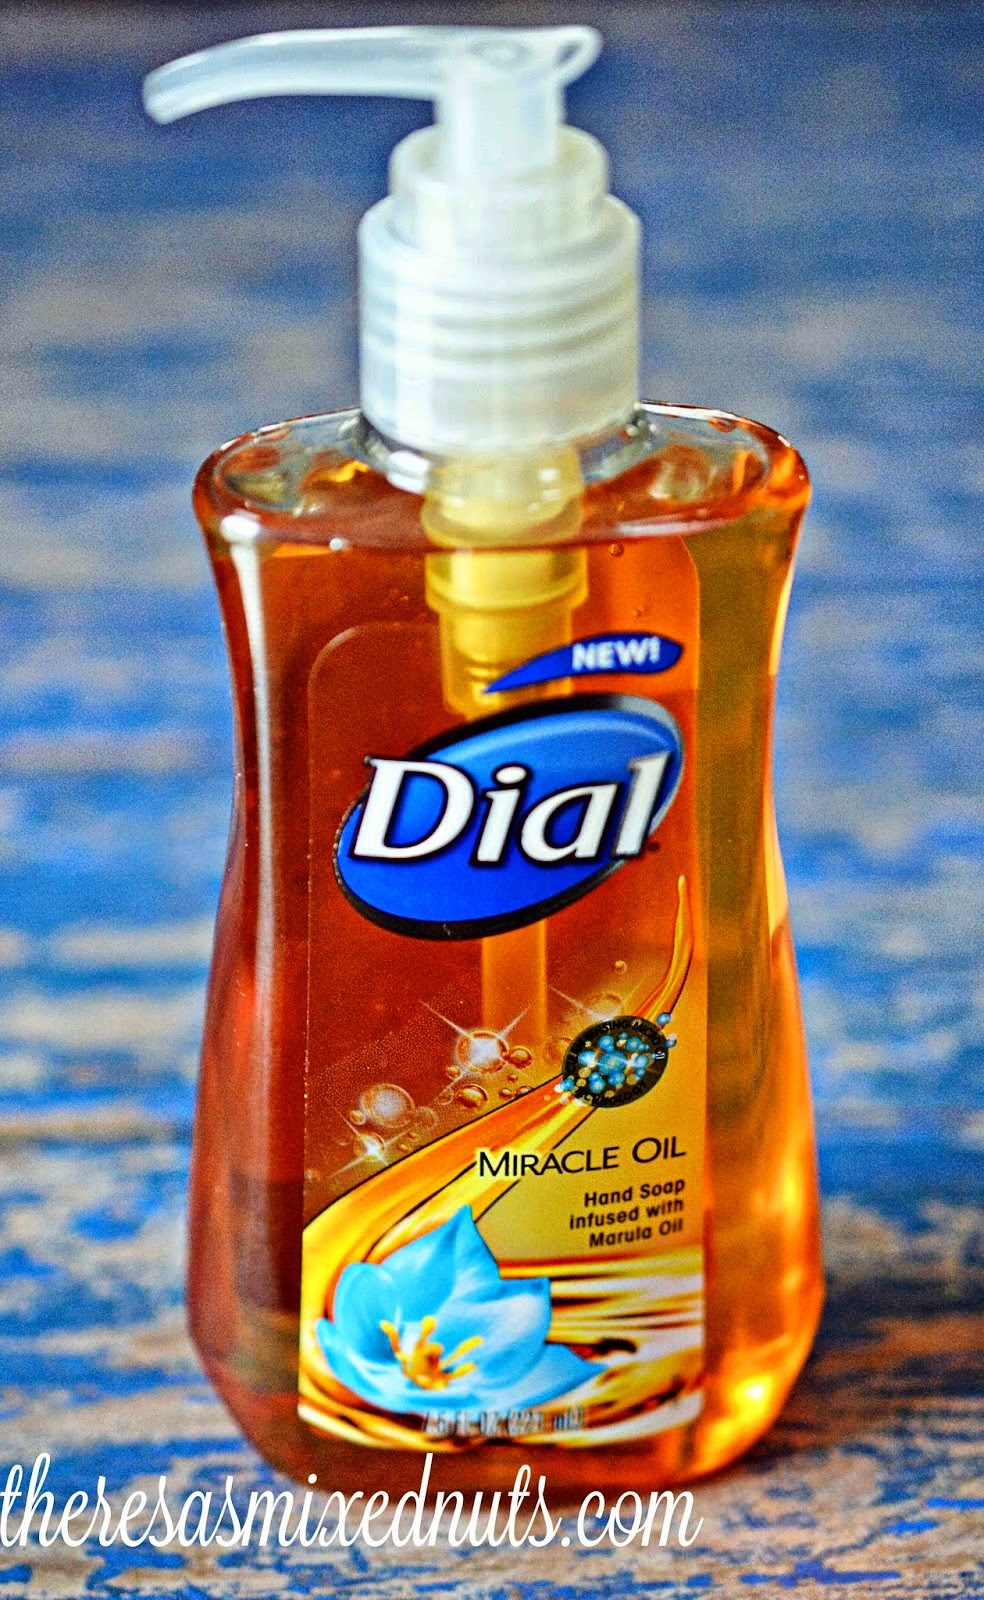 Enter To Win Dial Miracle Oil Hand Soap